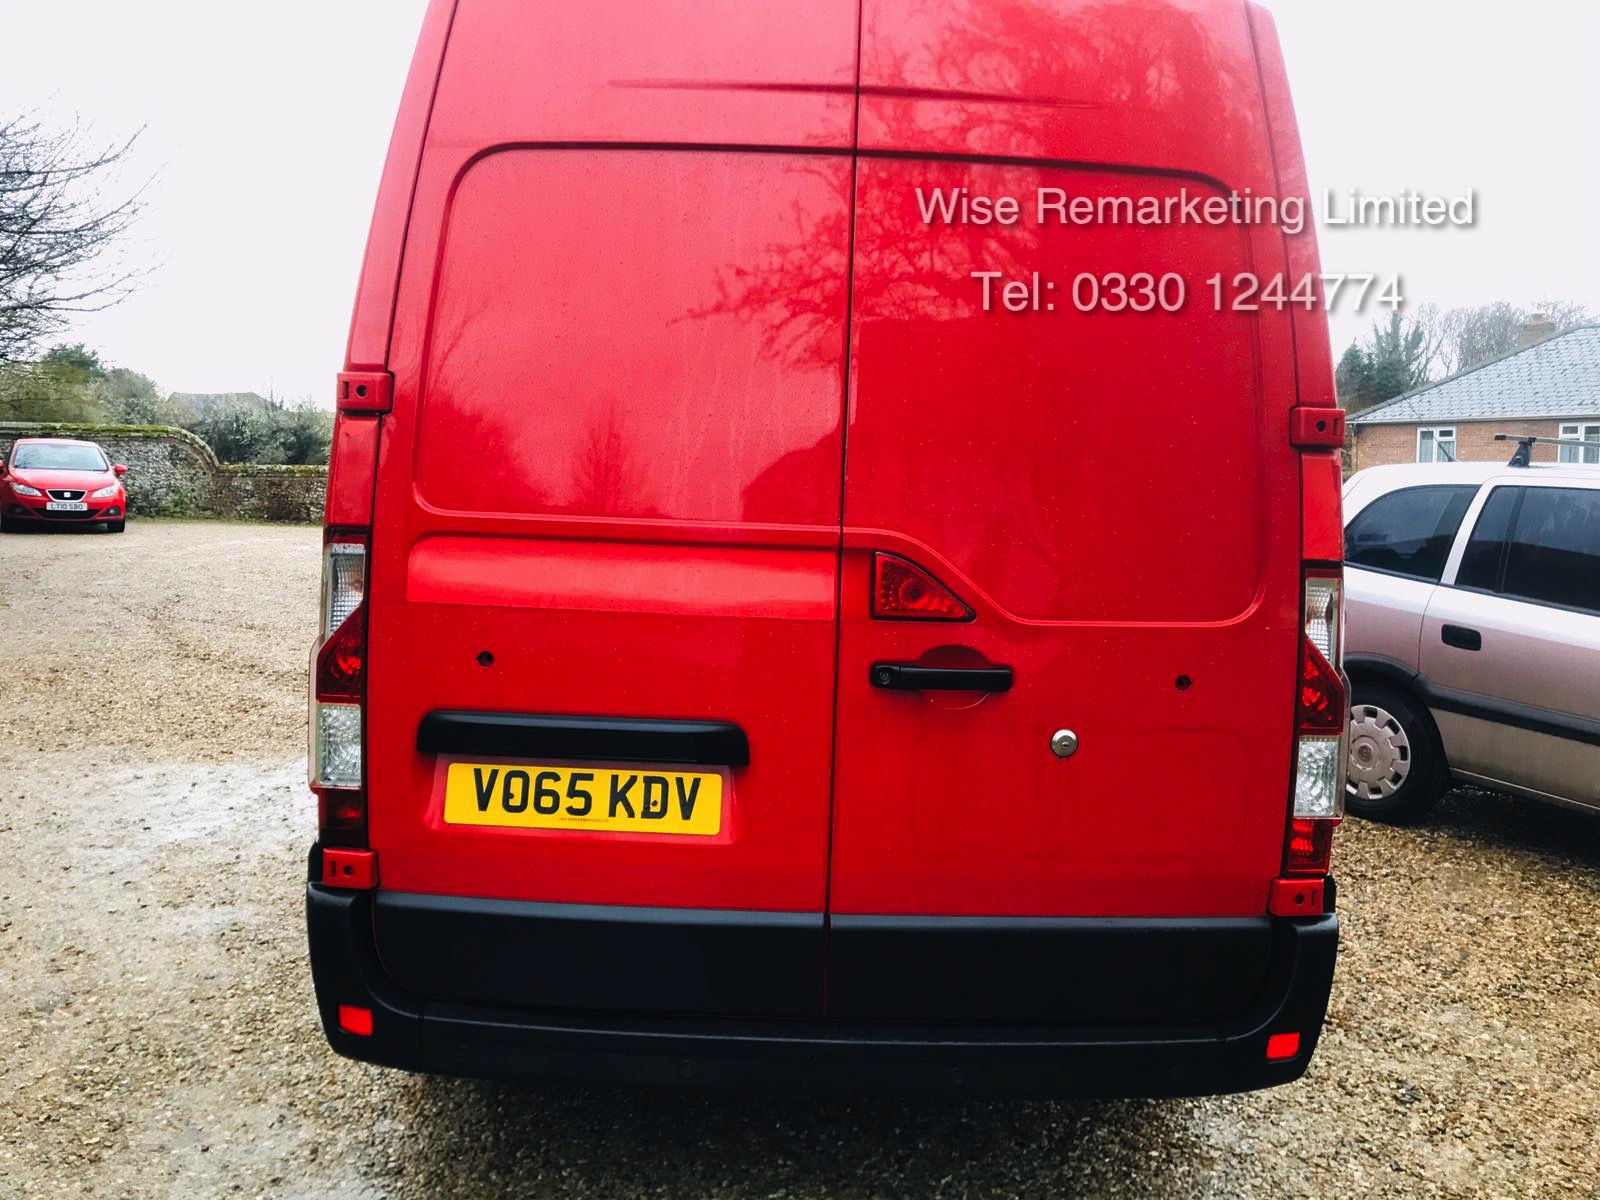 Vauxhall Movano 35 2.3 CDTi BiTurbo EcoFlex **HIGH ROOF** 2016 Model - AIr con - 1 Owner - RARE - Image 6 of 21